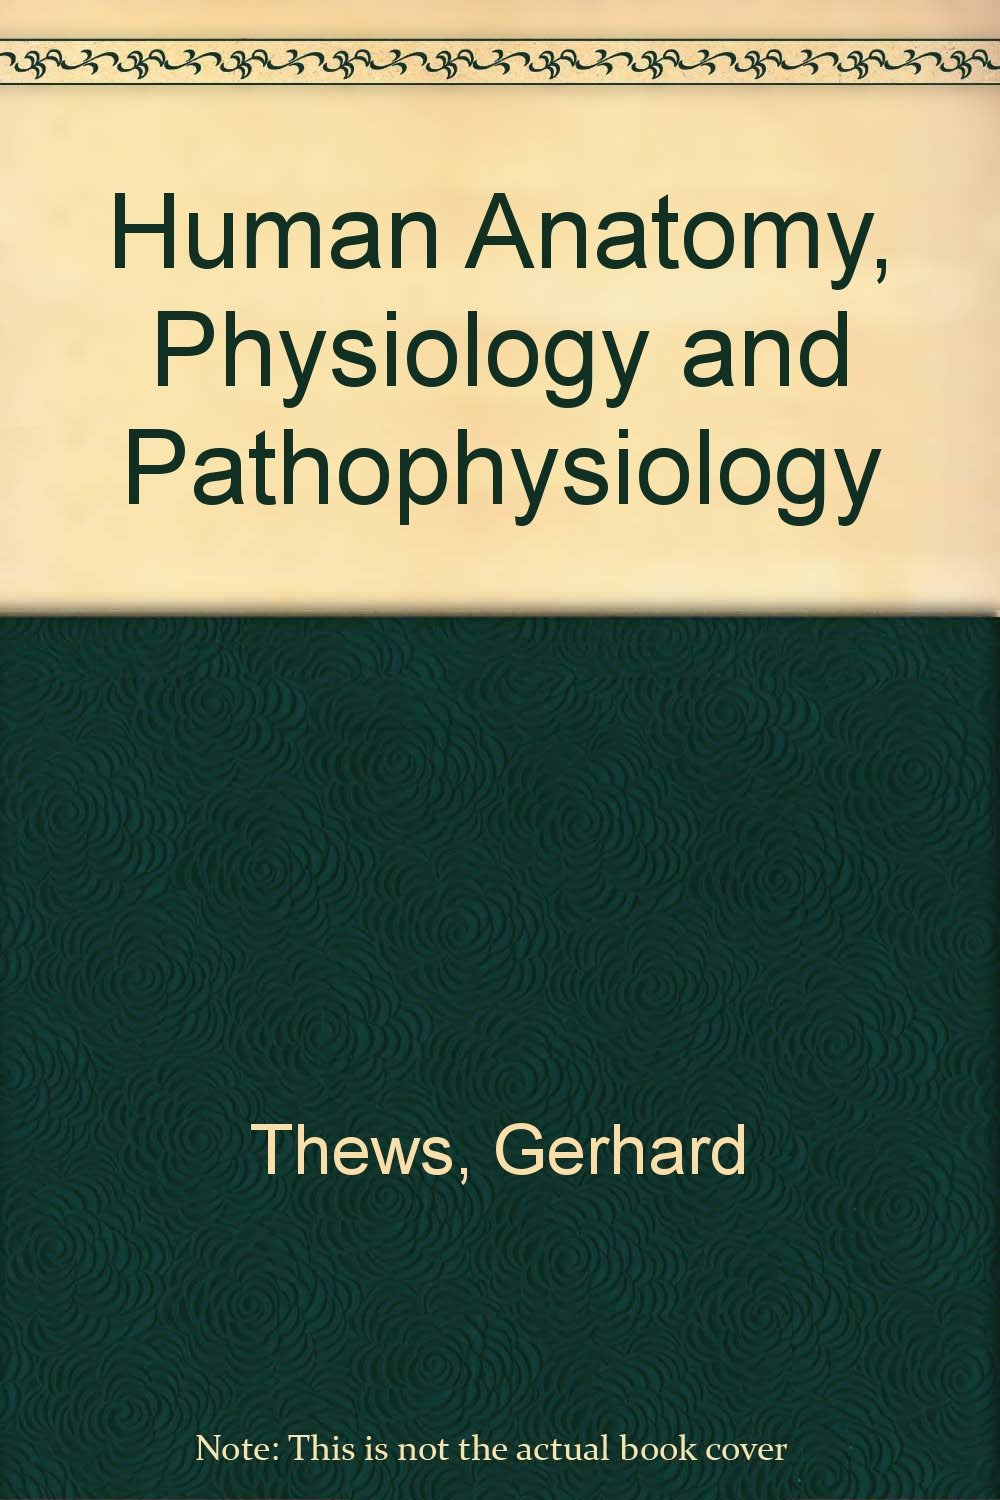 Buy Human Anatomy, Physiology and Pathophysiology Book Online at Low ...